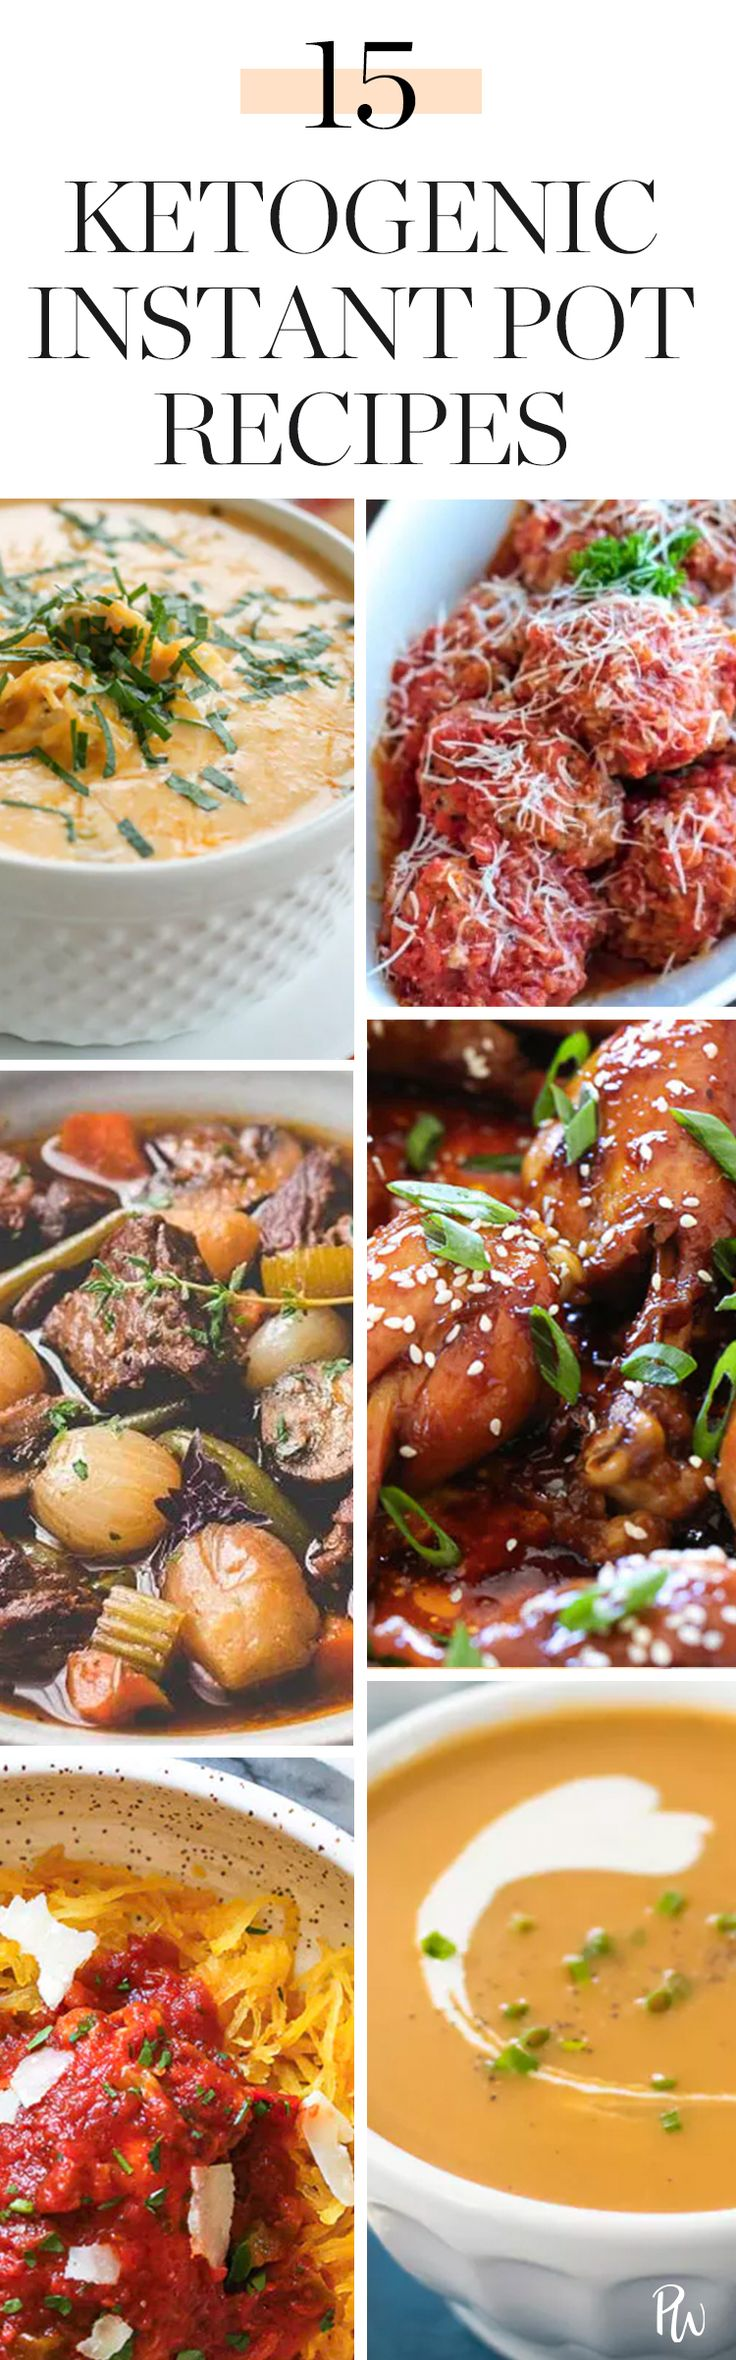 15 Ketogenic Recipes You Can Make in an Instant Pot